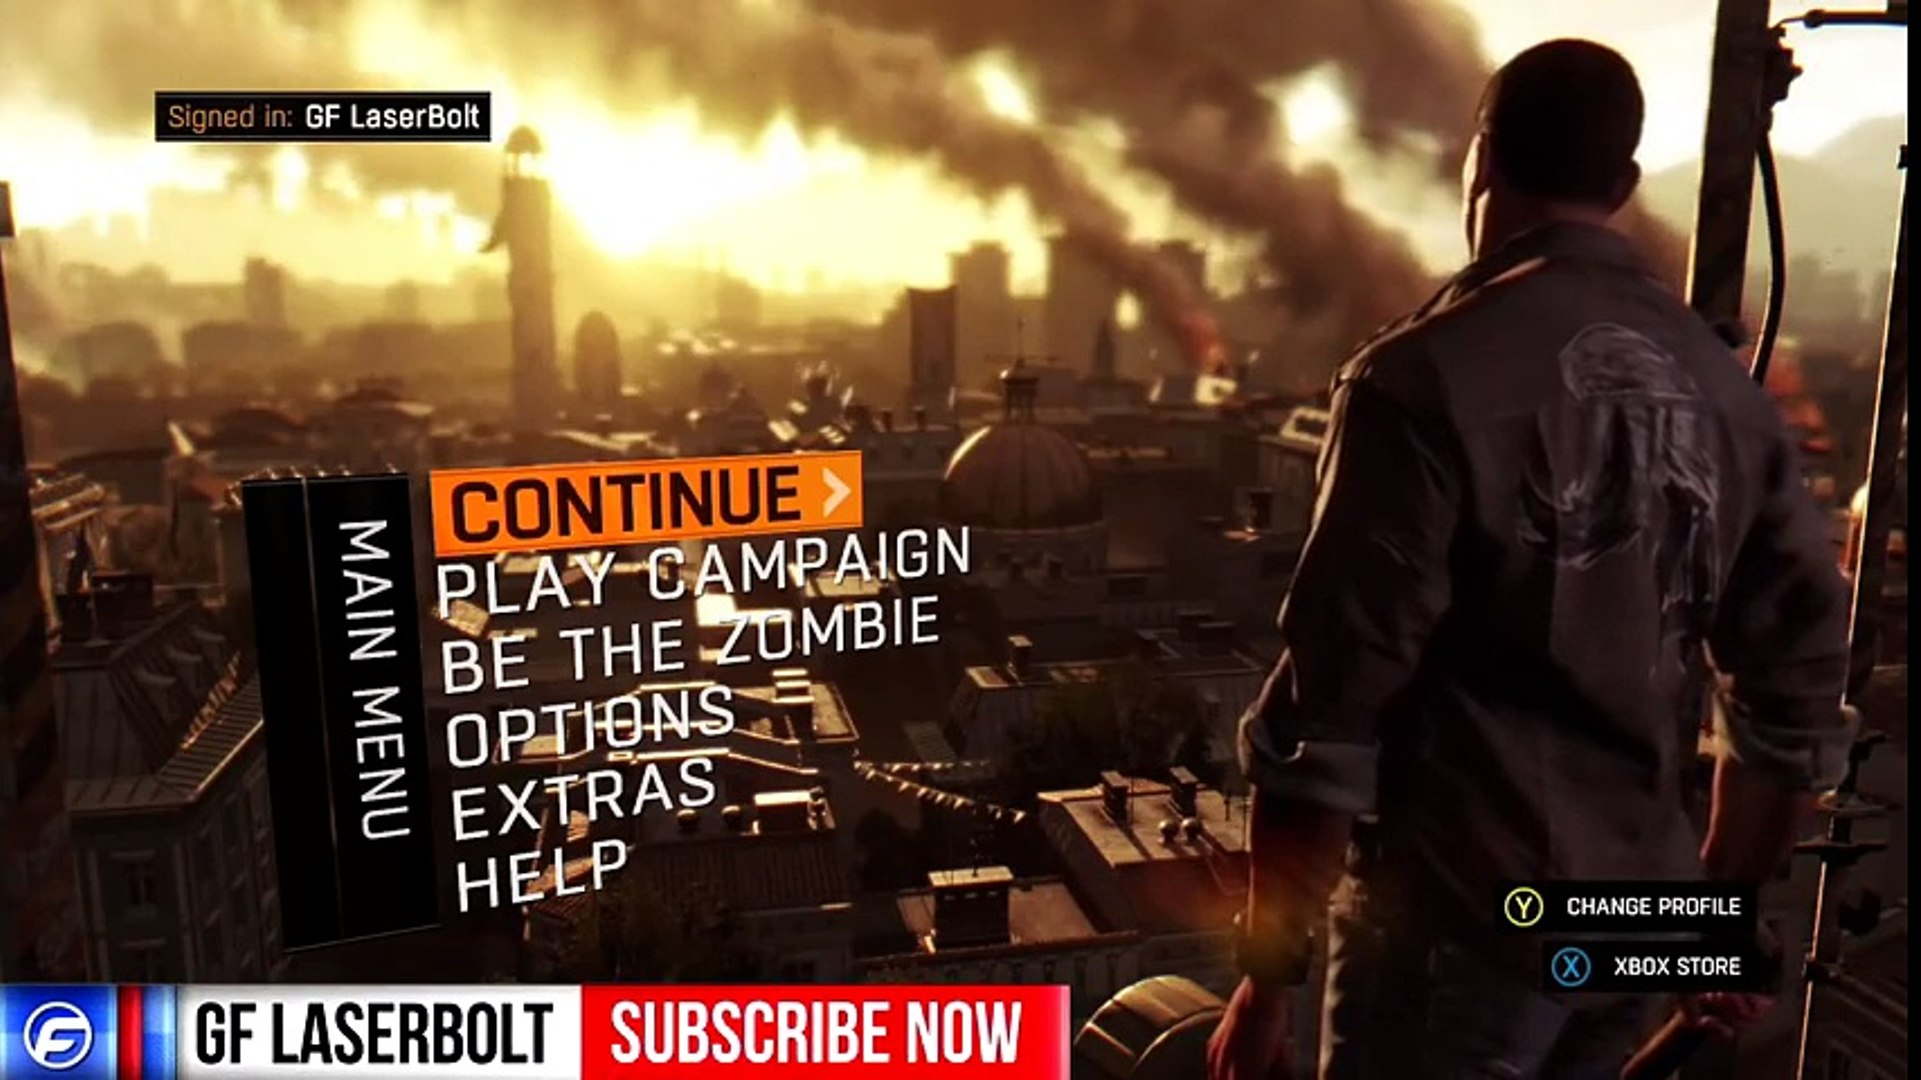 Dying Light 10 TIPS to SURVIVE and STAY ALIVE that will SAVE Your LIFE Strategy Guide